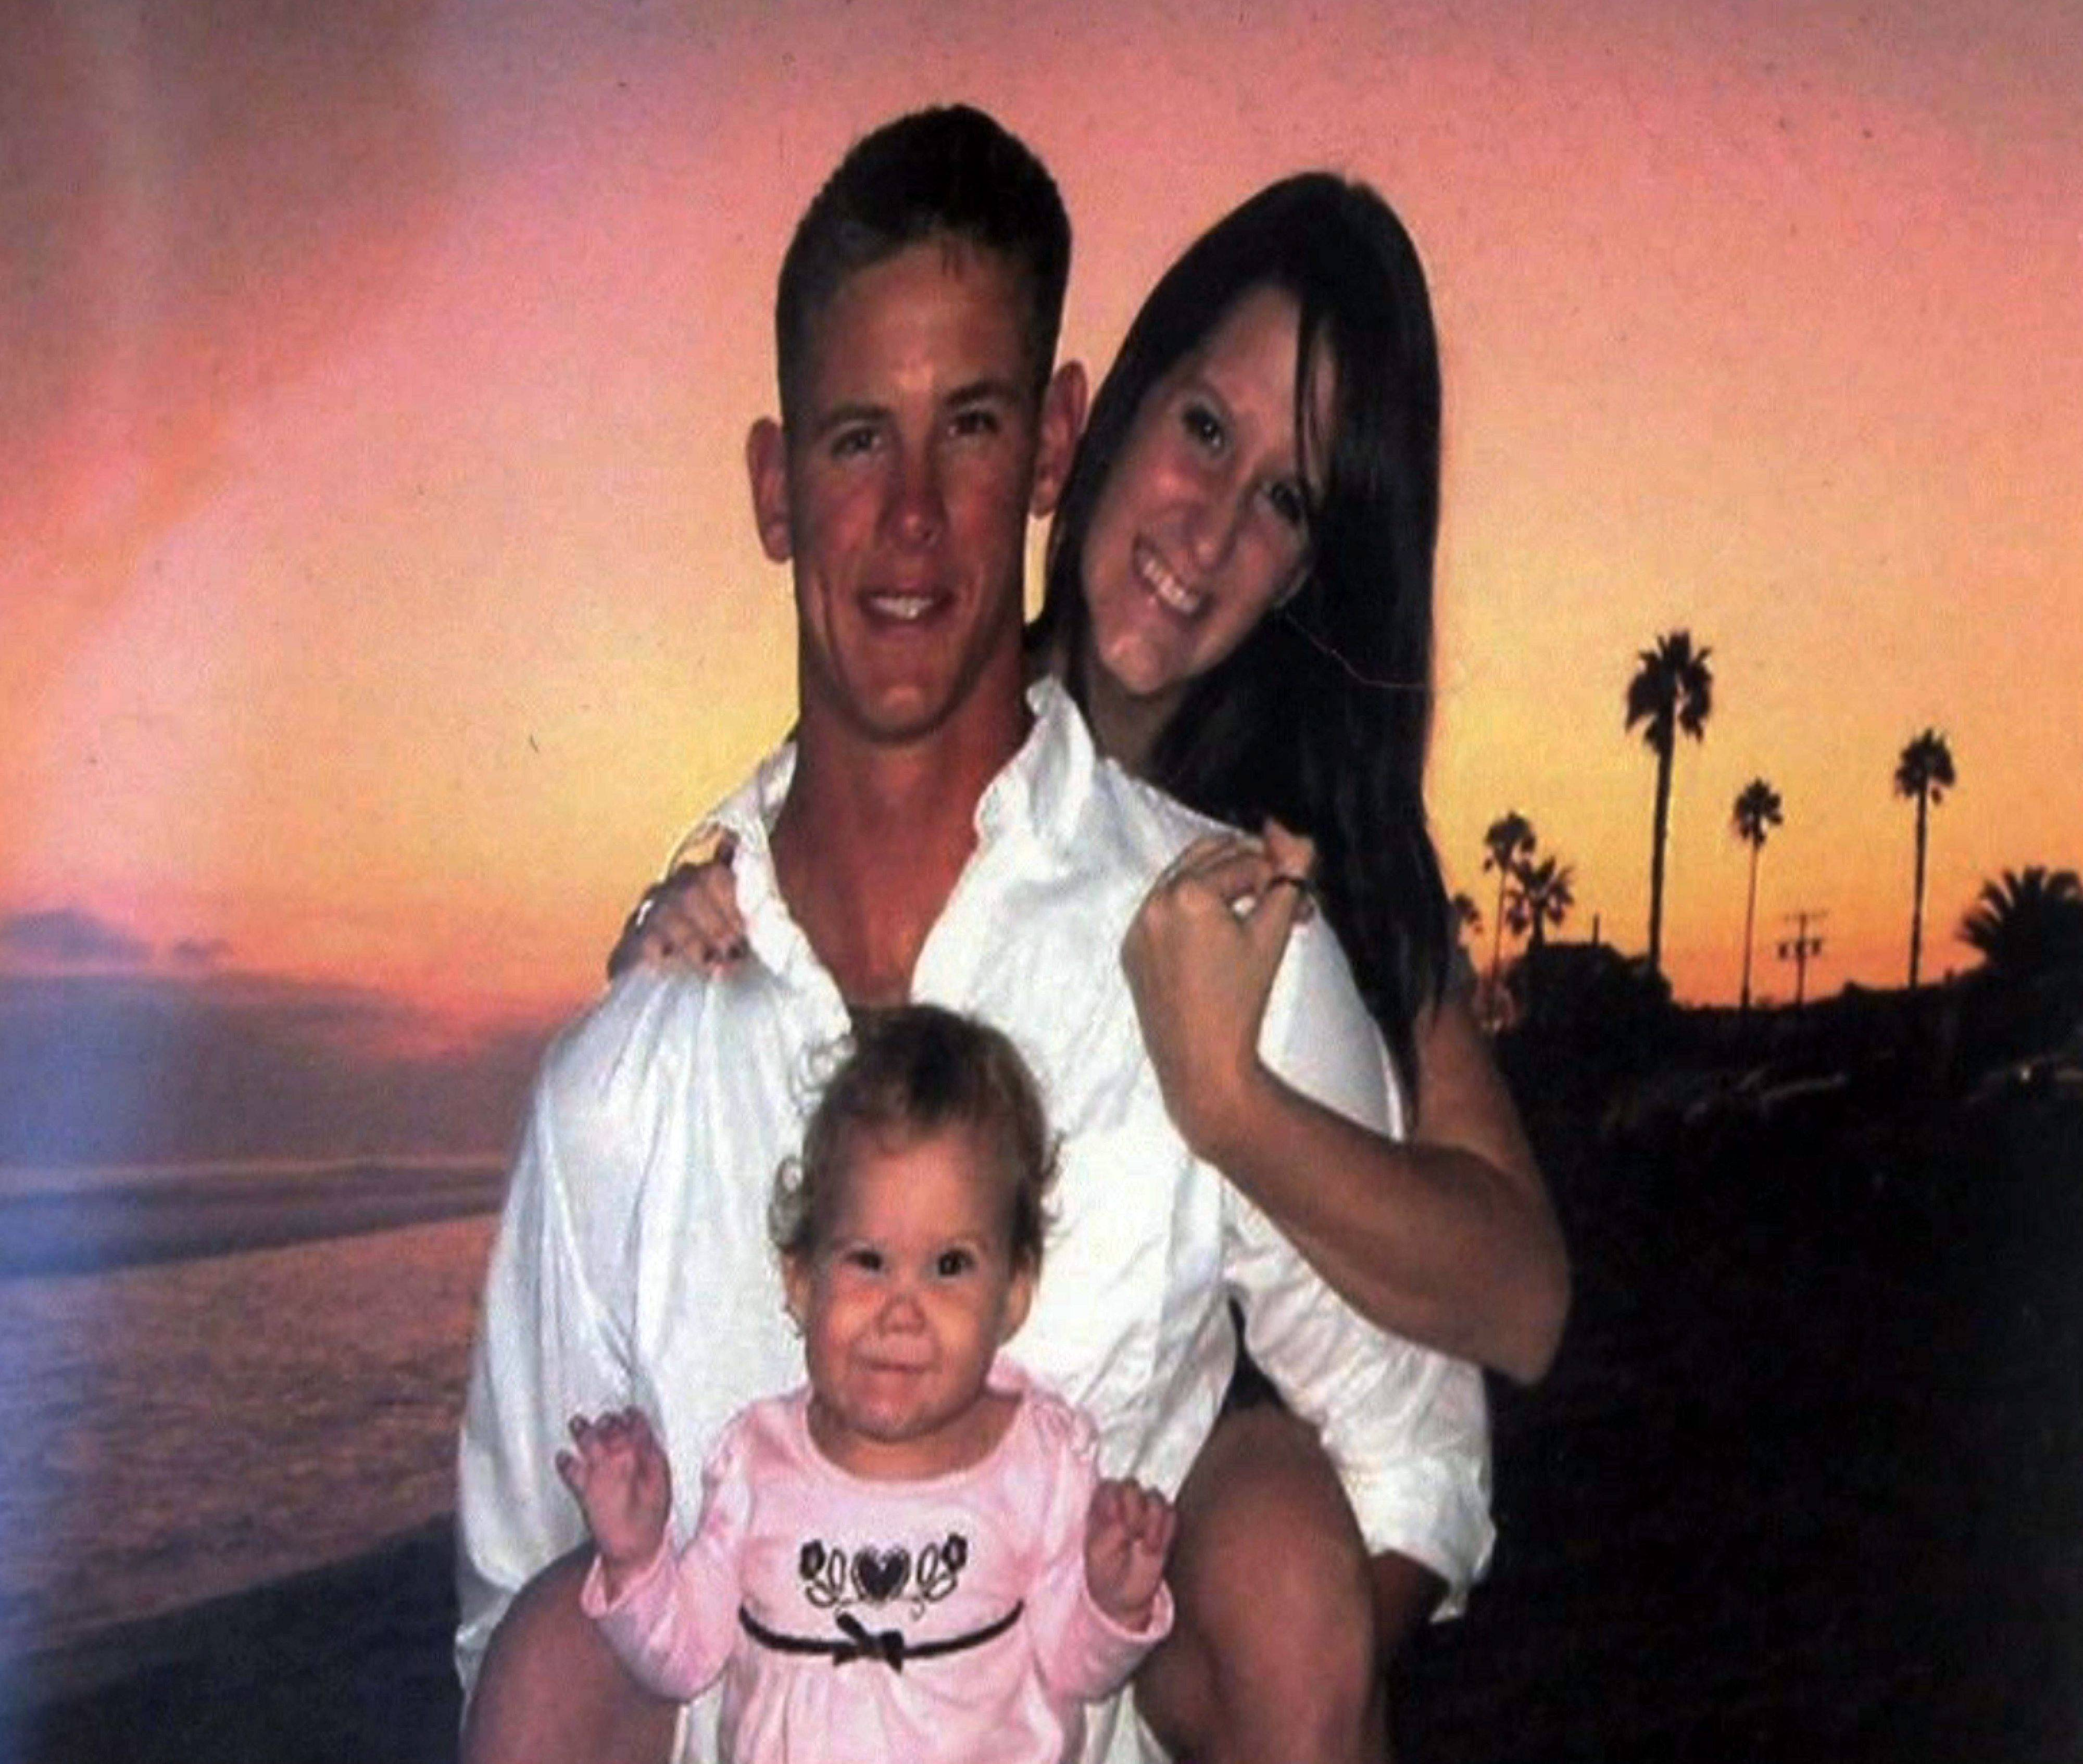 Cpl. James Stack of Arlington Heights, who was killed in Afghanistan, left behind his wife, Katie, and their daughter.